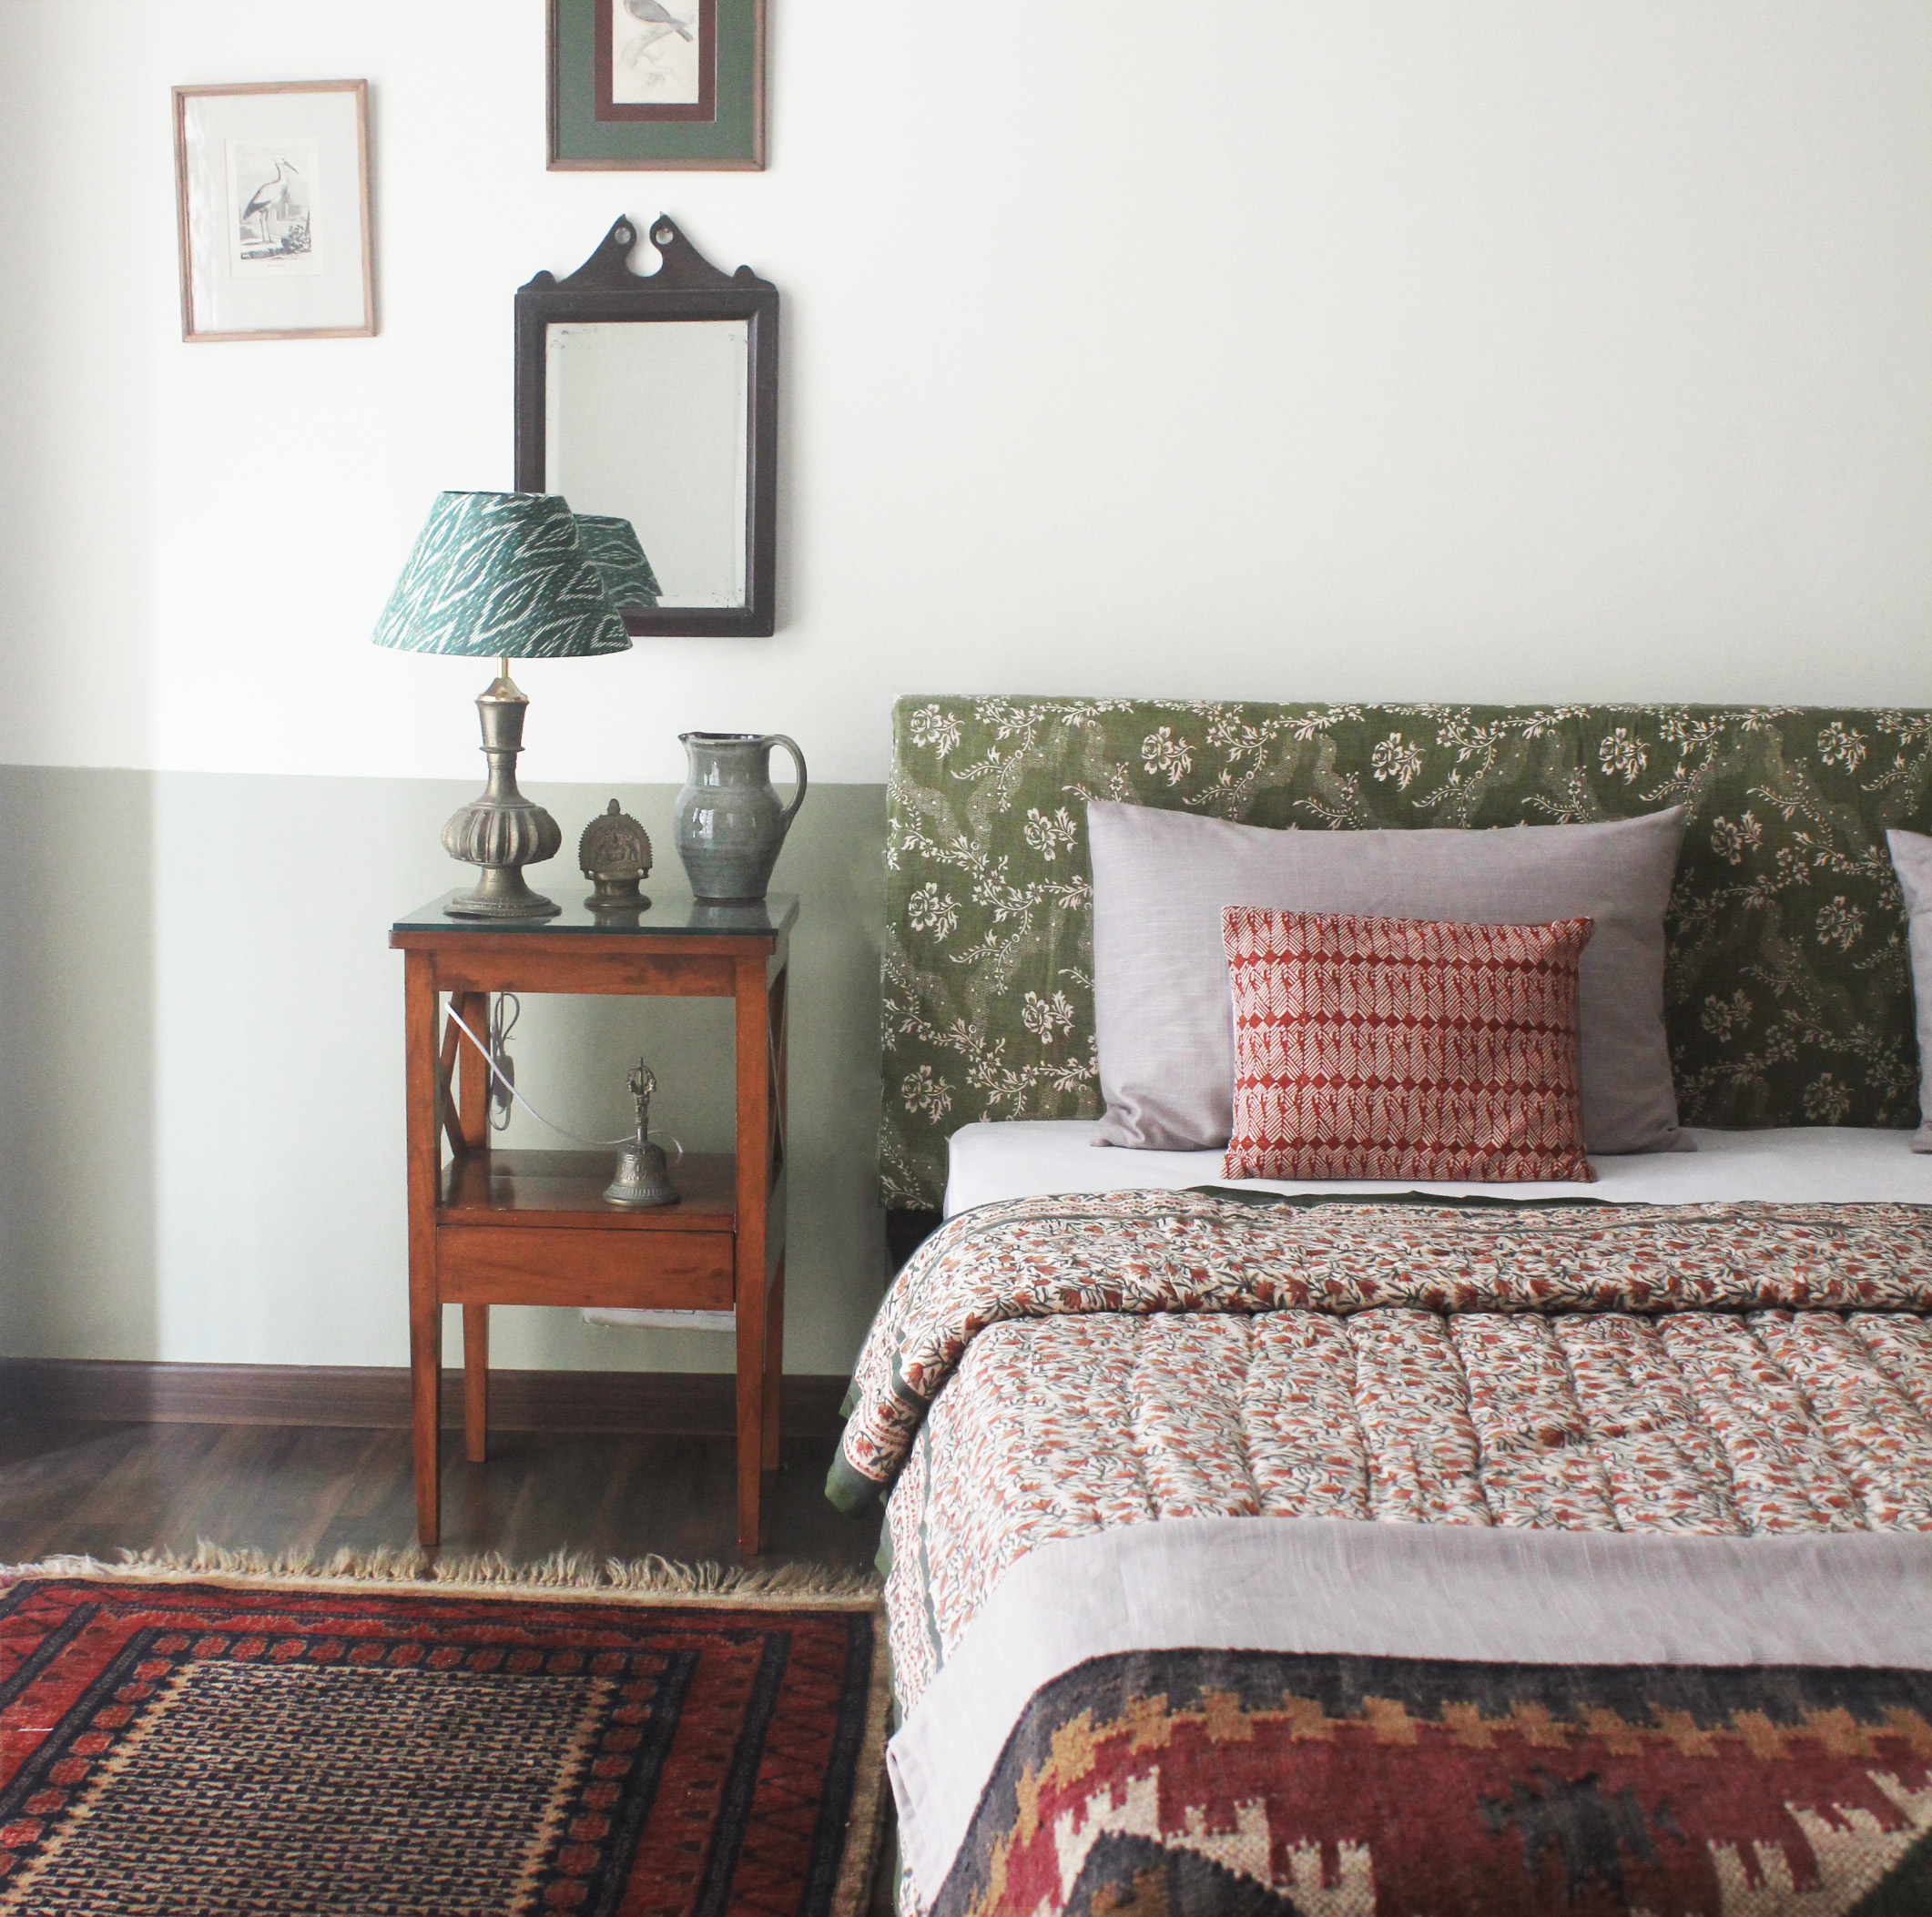 bedroom, india, textiles, interior design